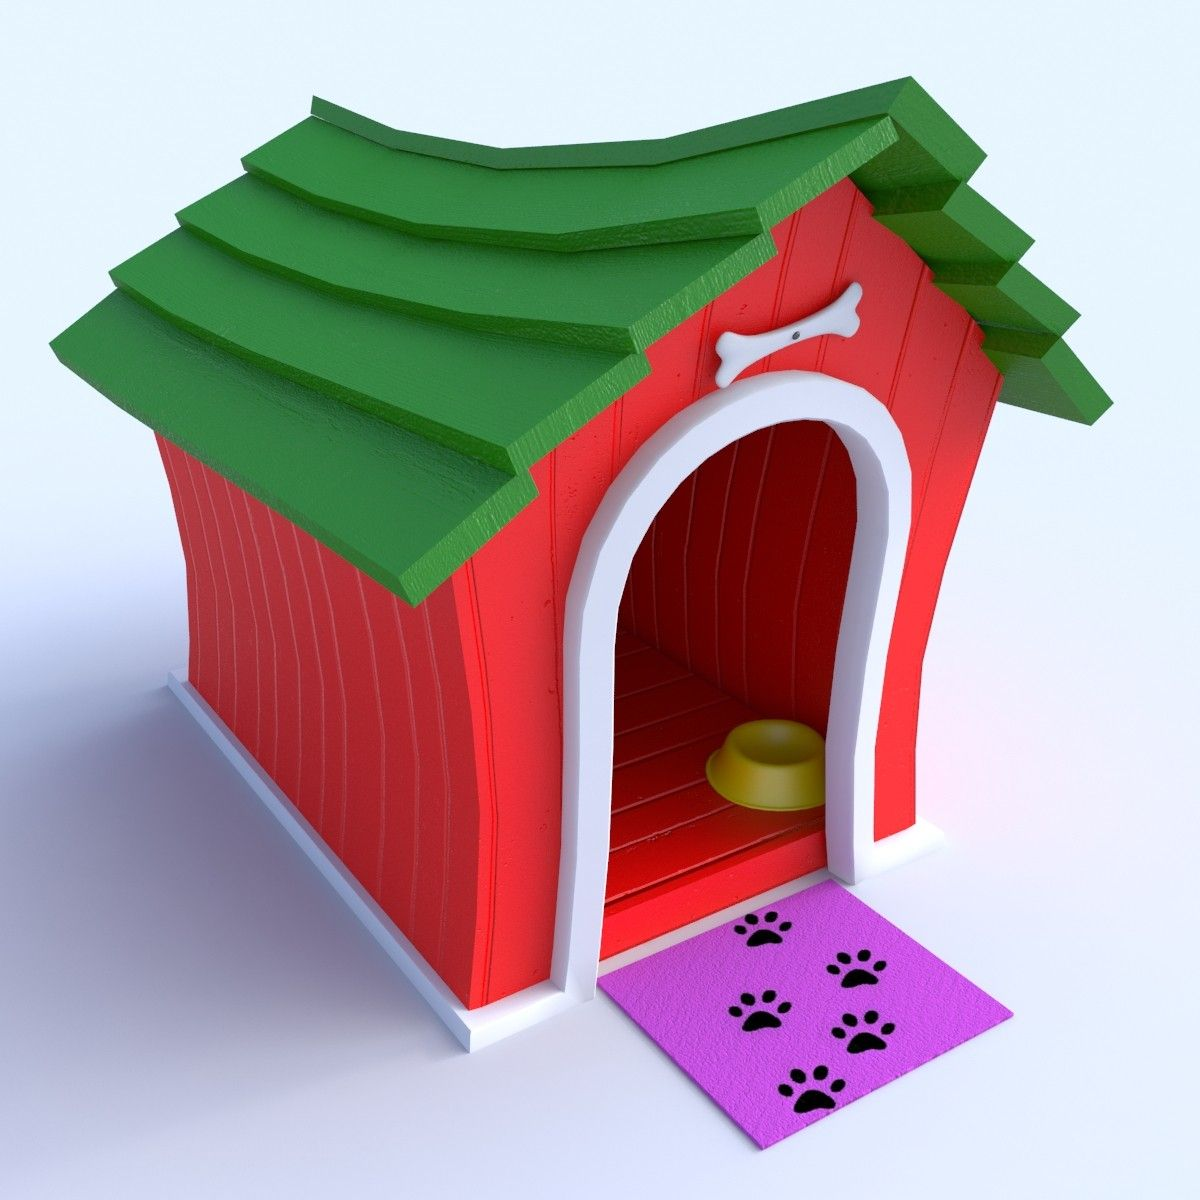 Cartoon Doghouse 3d Model 3d Model Dog Houses 3d Model Cartoon